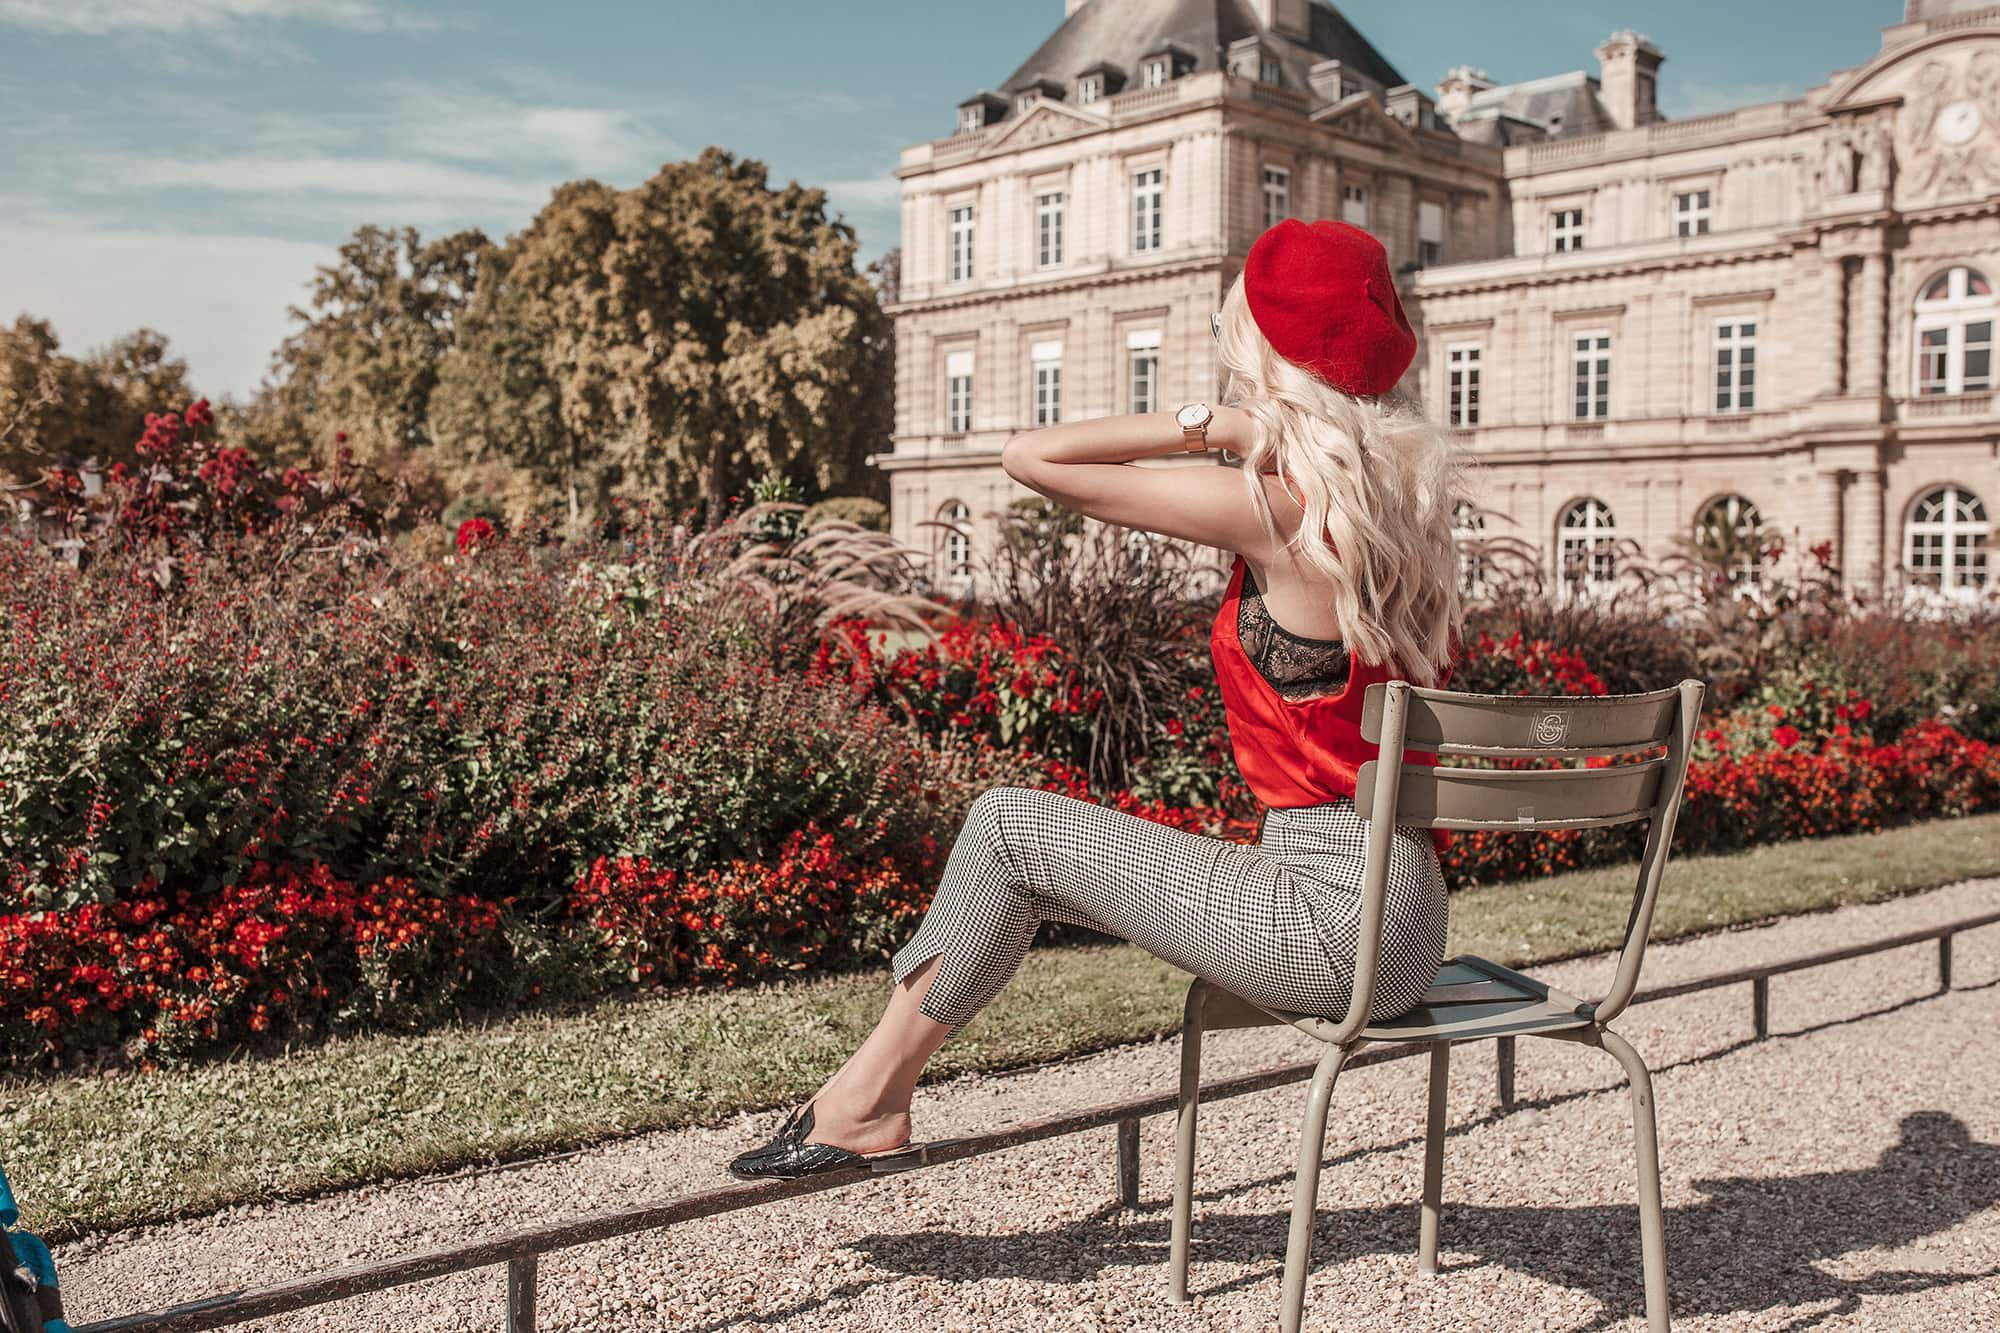 Jetset Lust at Luxembourg Gardens in Paris